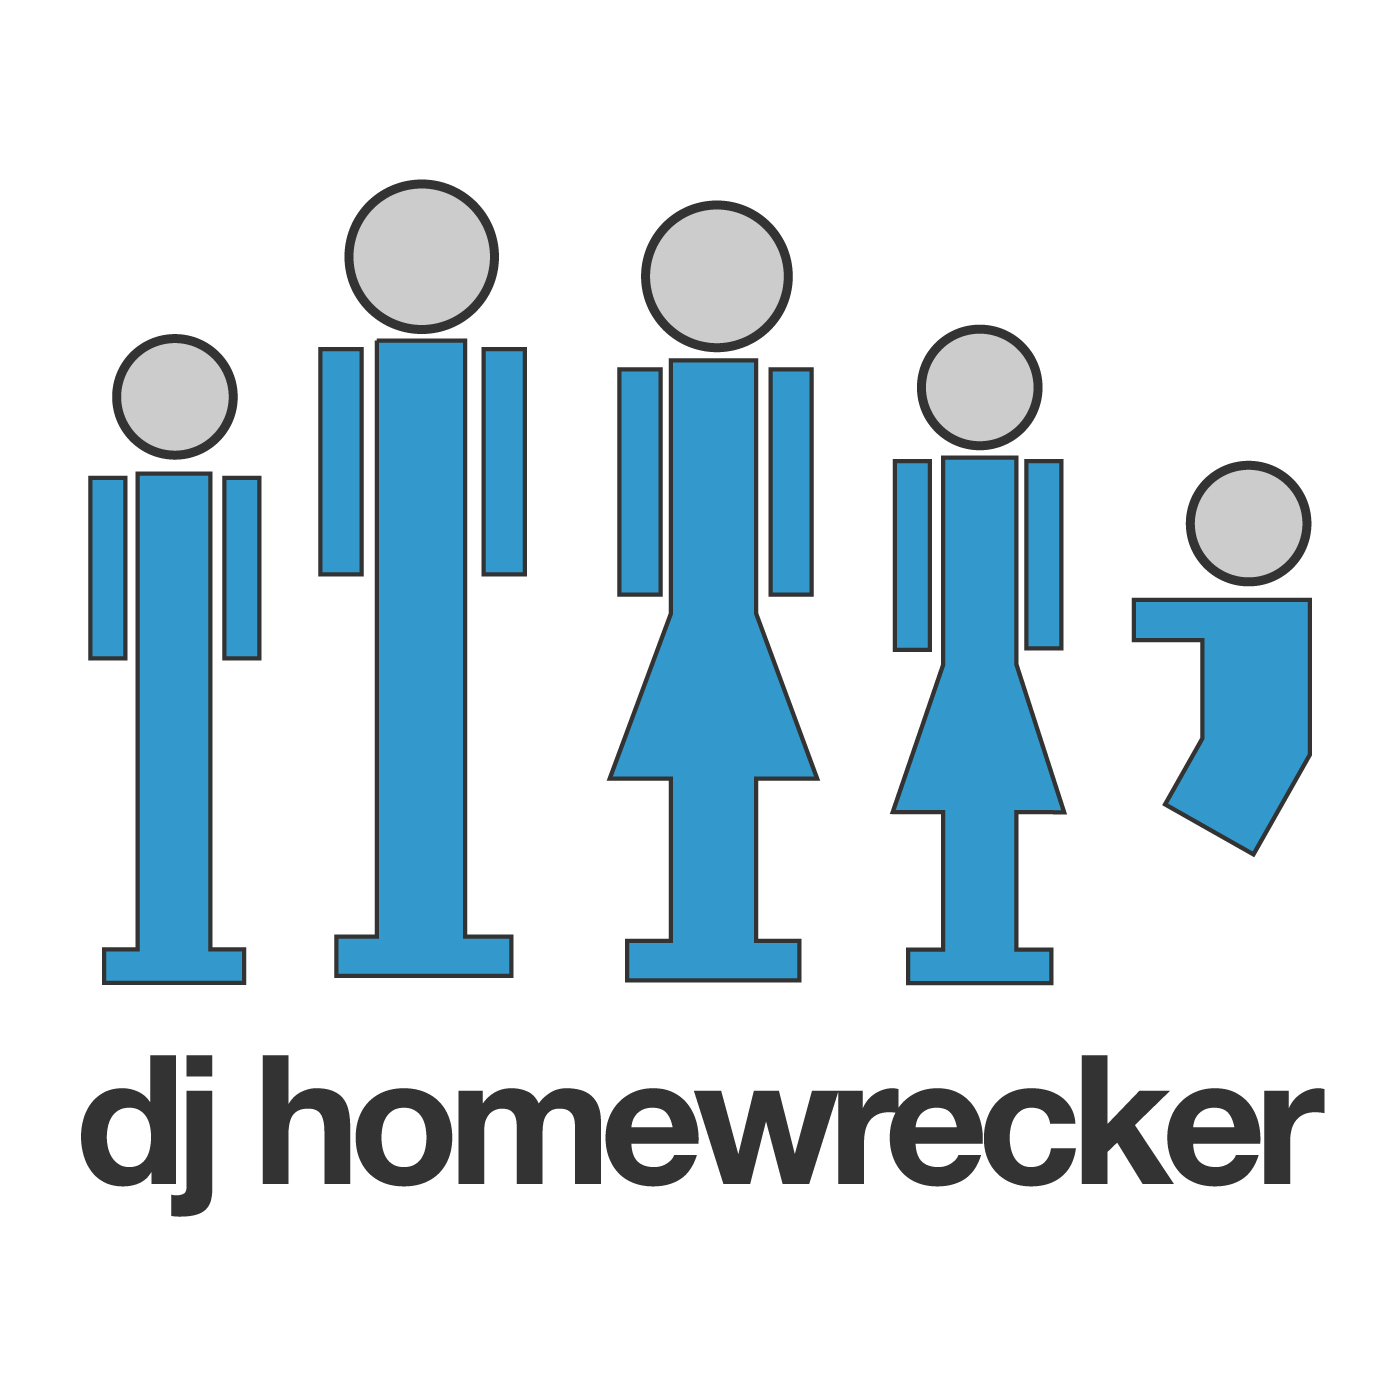 Podwrecker - The DJ Homewrecker Podcast